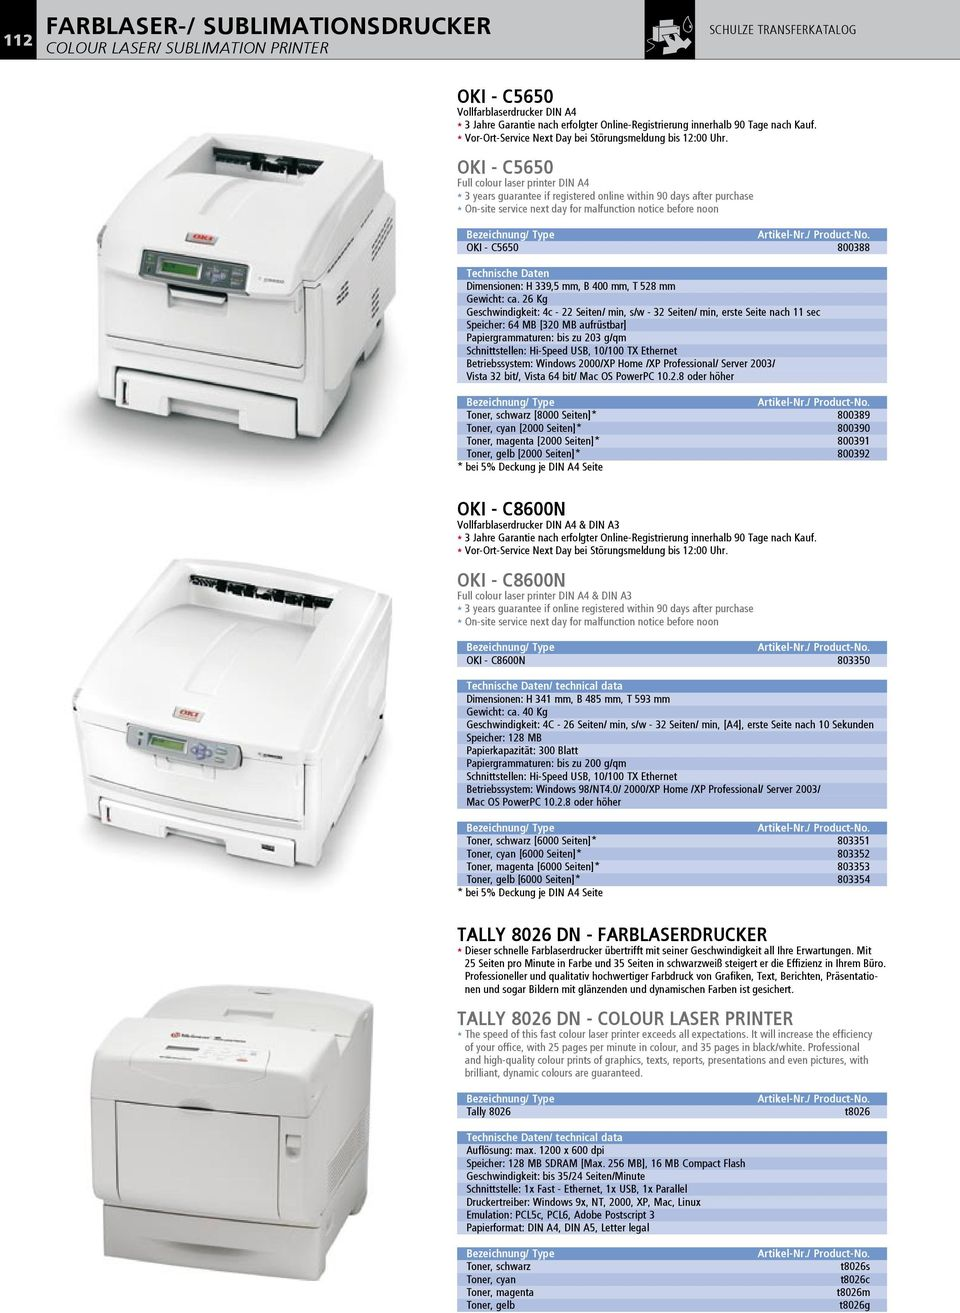 OKI - C5650 Full colour laser printer DIN A4 3 years guarantee if registered online within 90 days after purchase On-site service next day for malfunction notice before noon OKI - C5650 800388